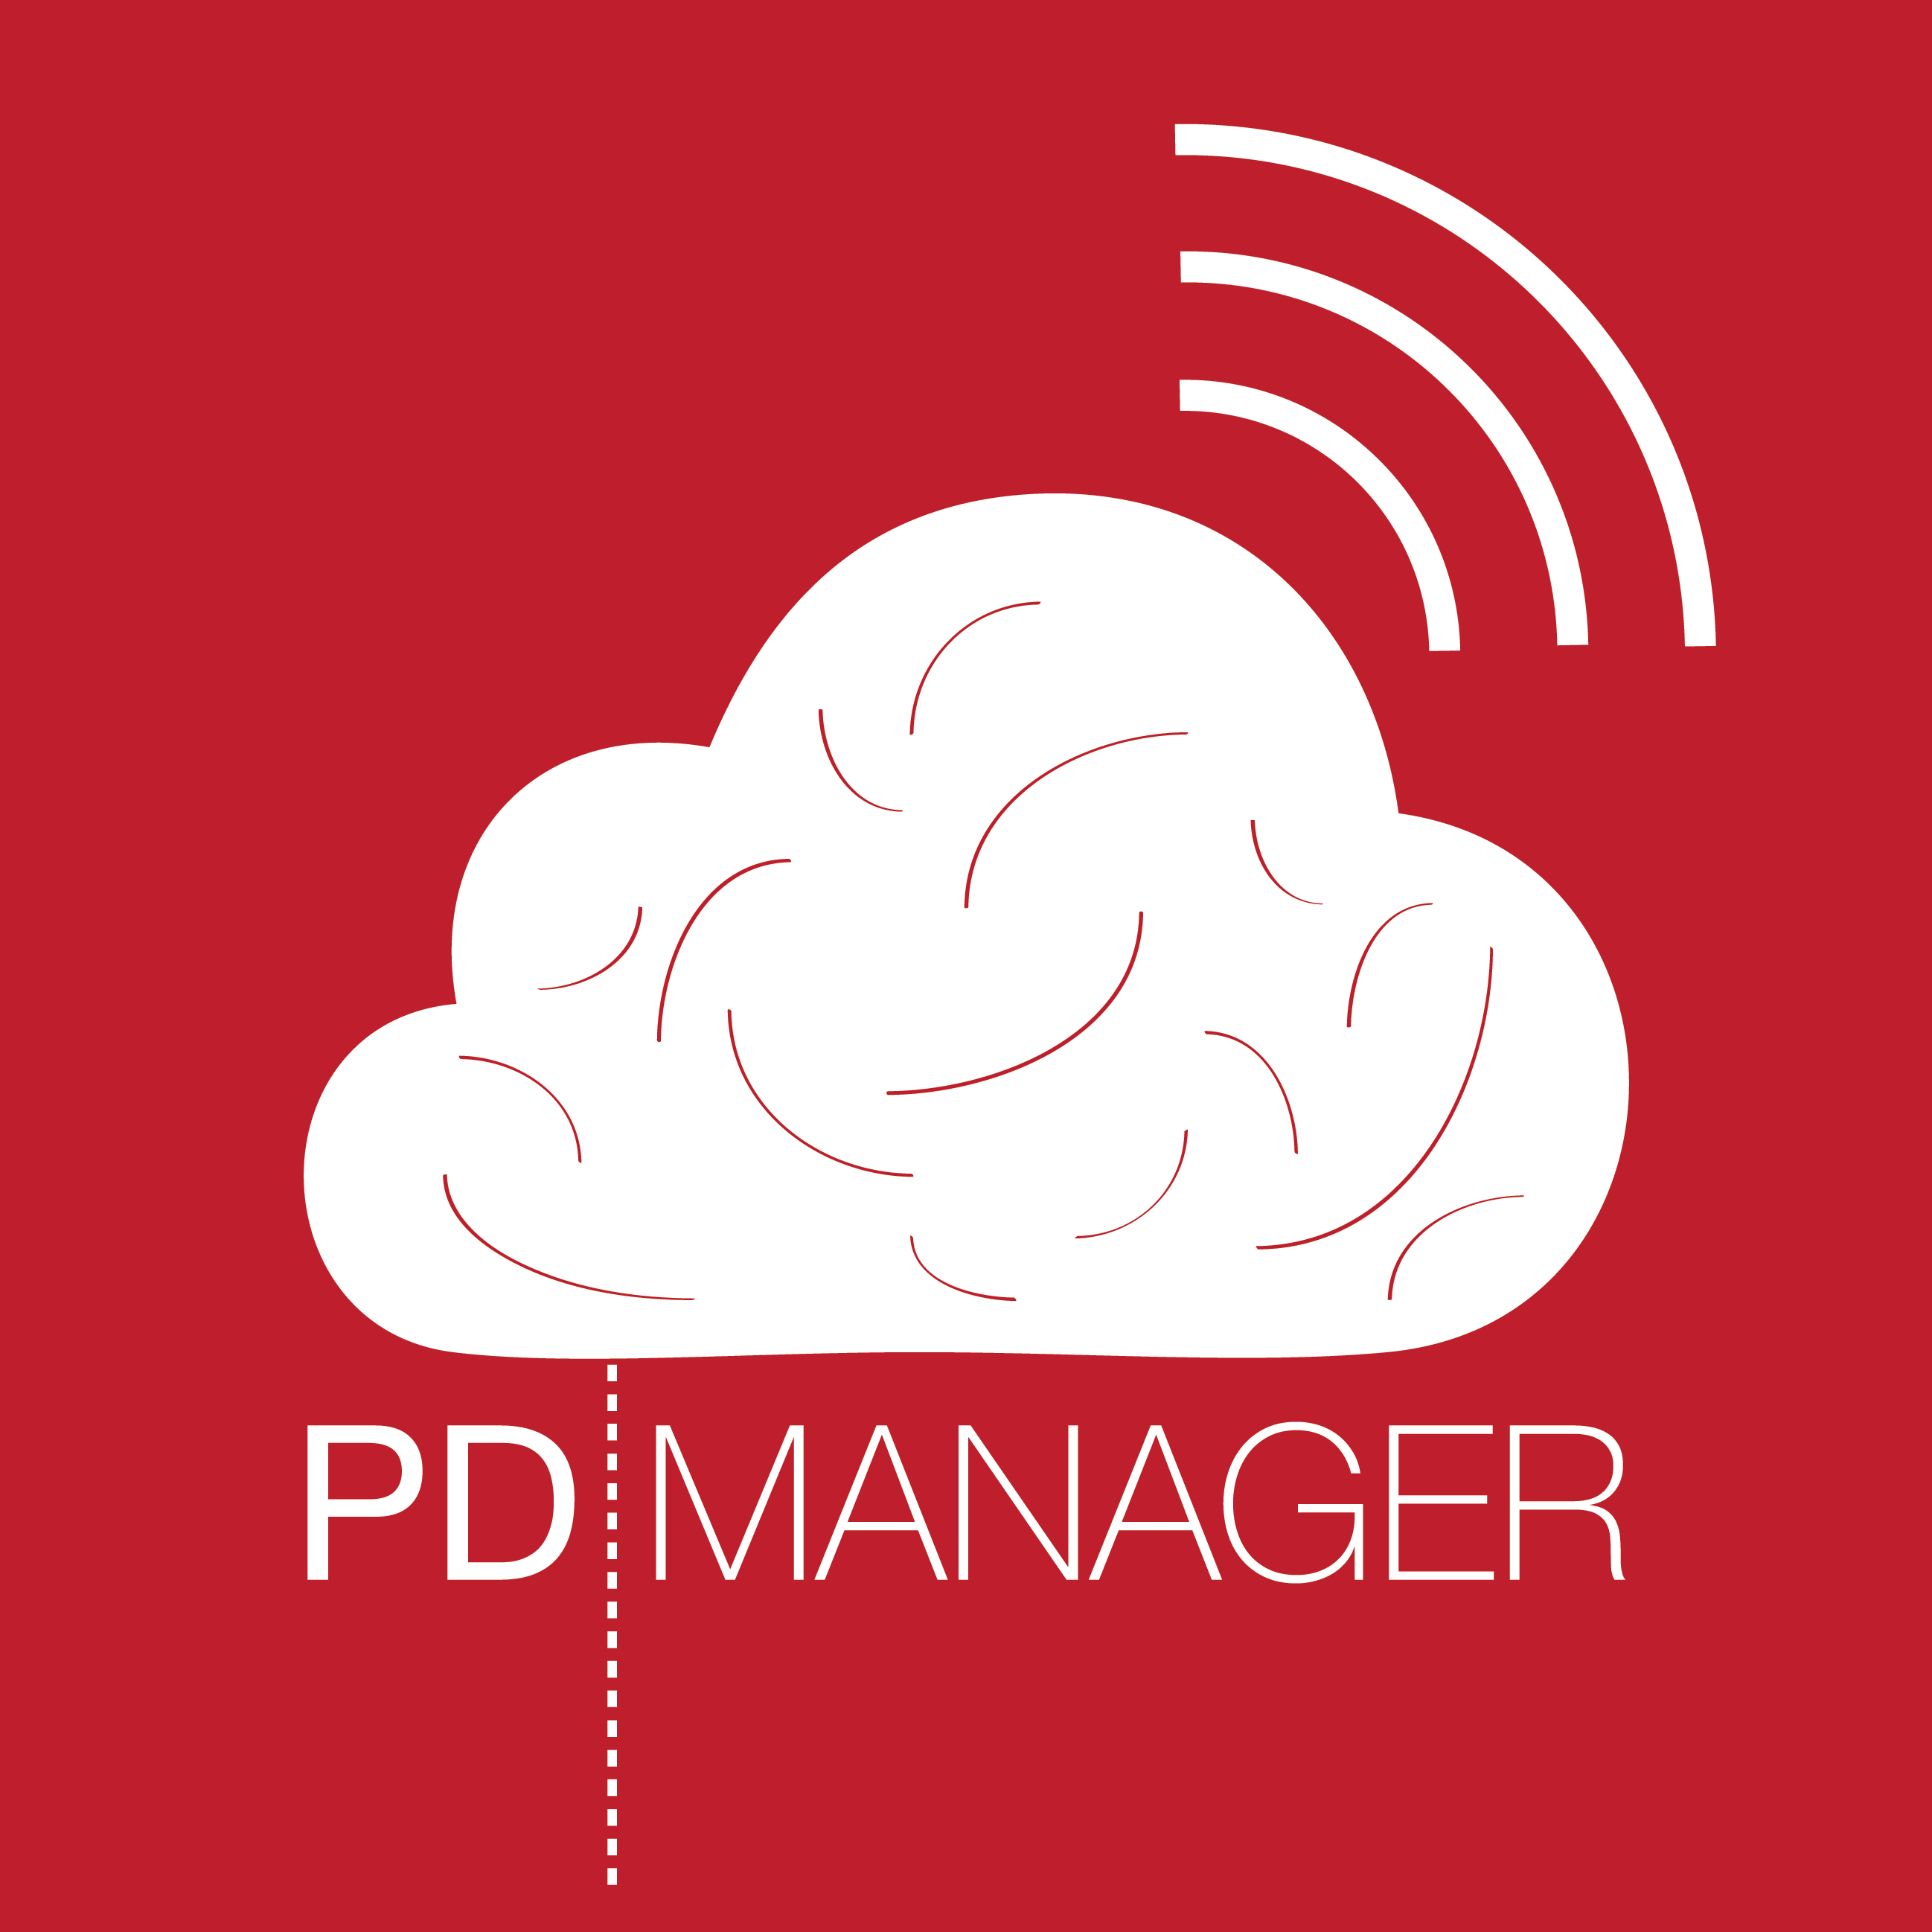 PD_Manager logo